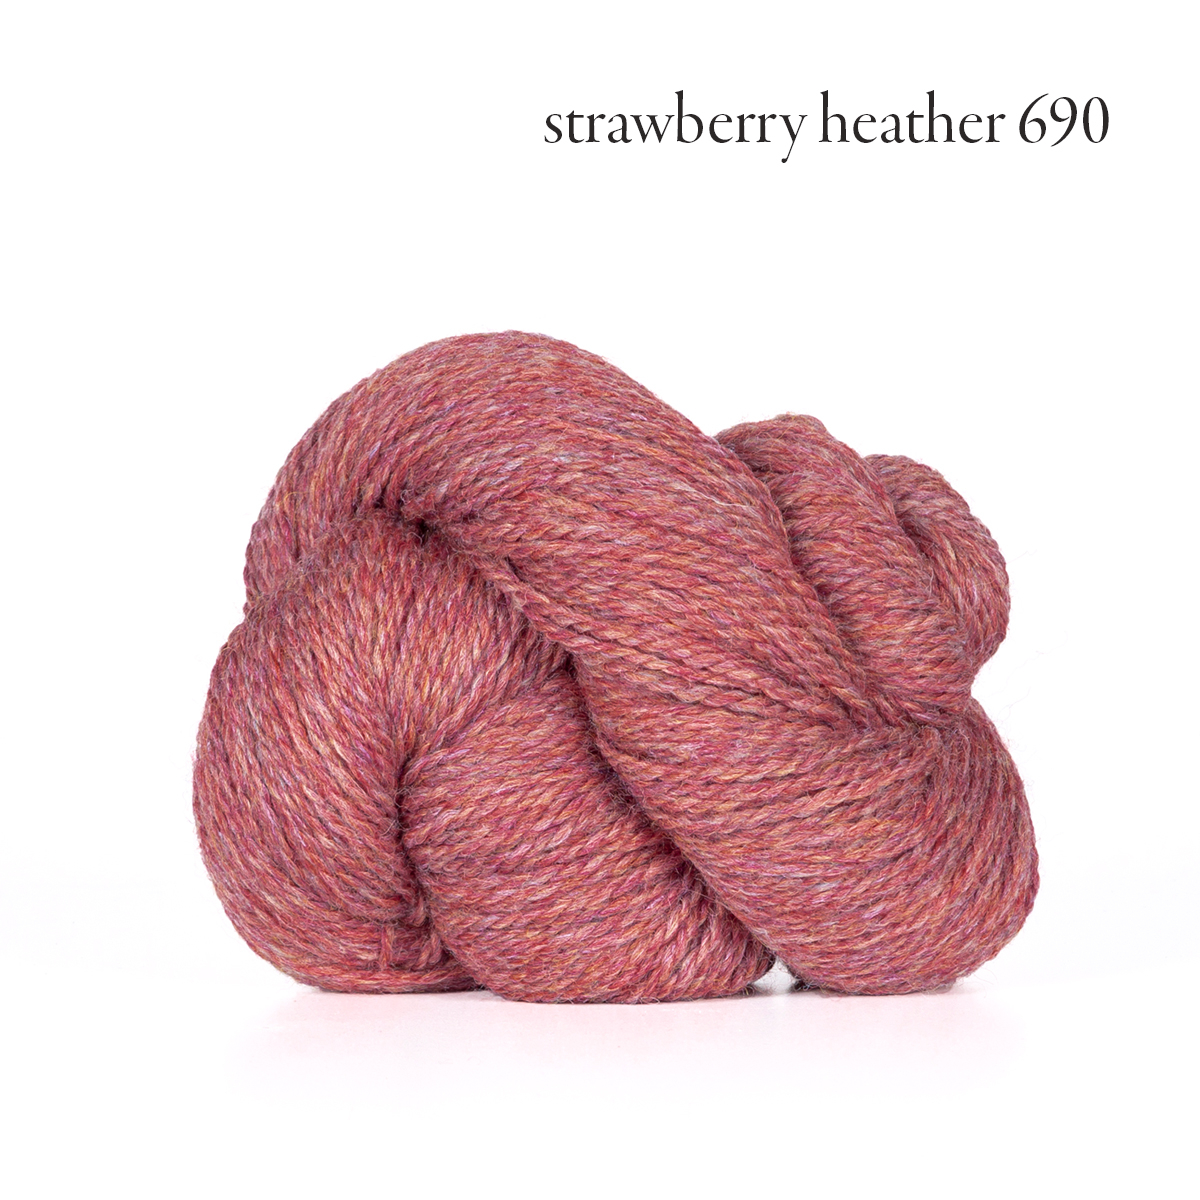 strawberry heather 690.jpg